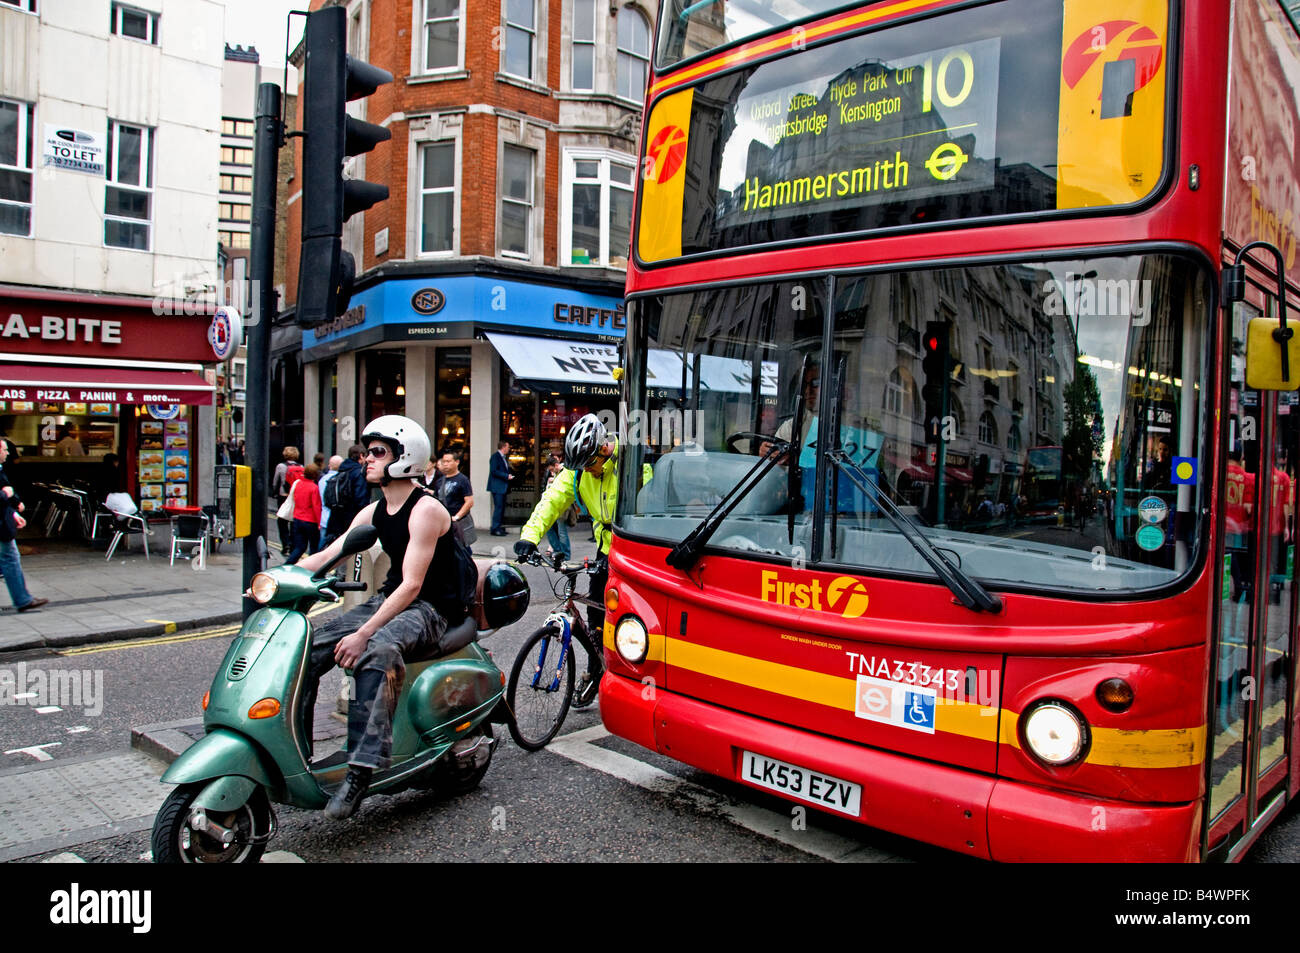 Red double decker bus London  Oxford Street - Stock Image